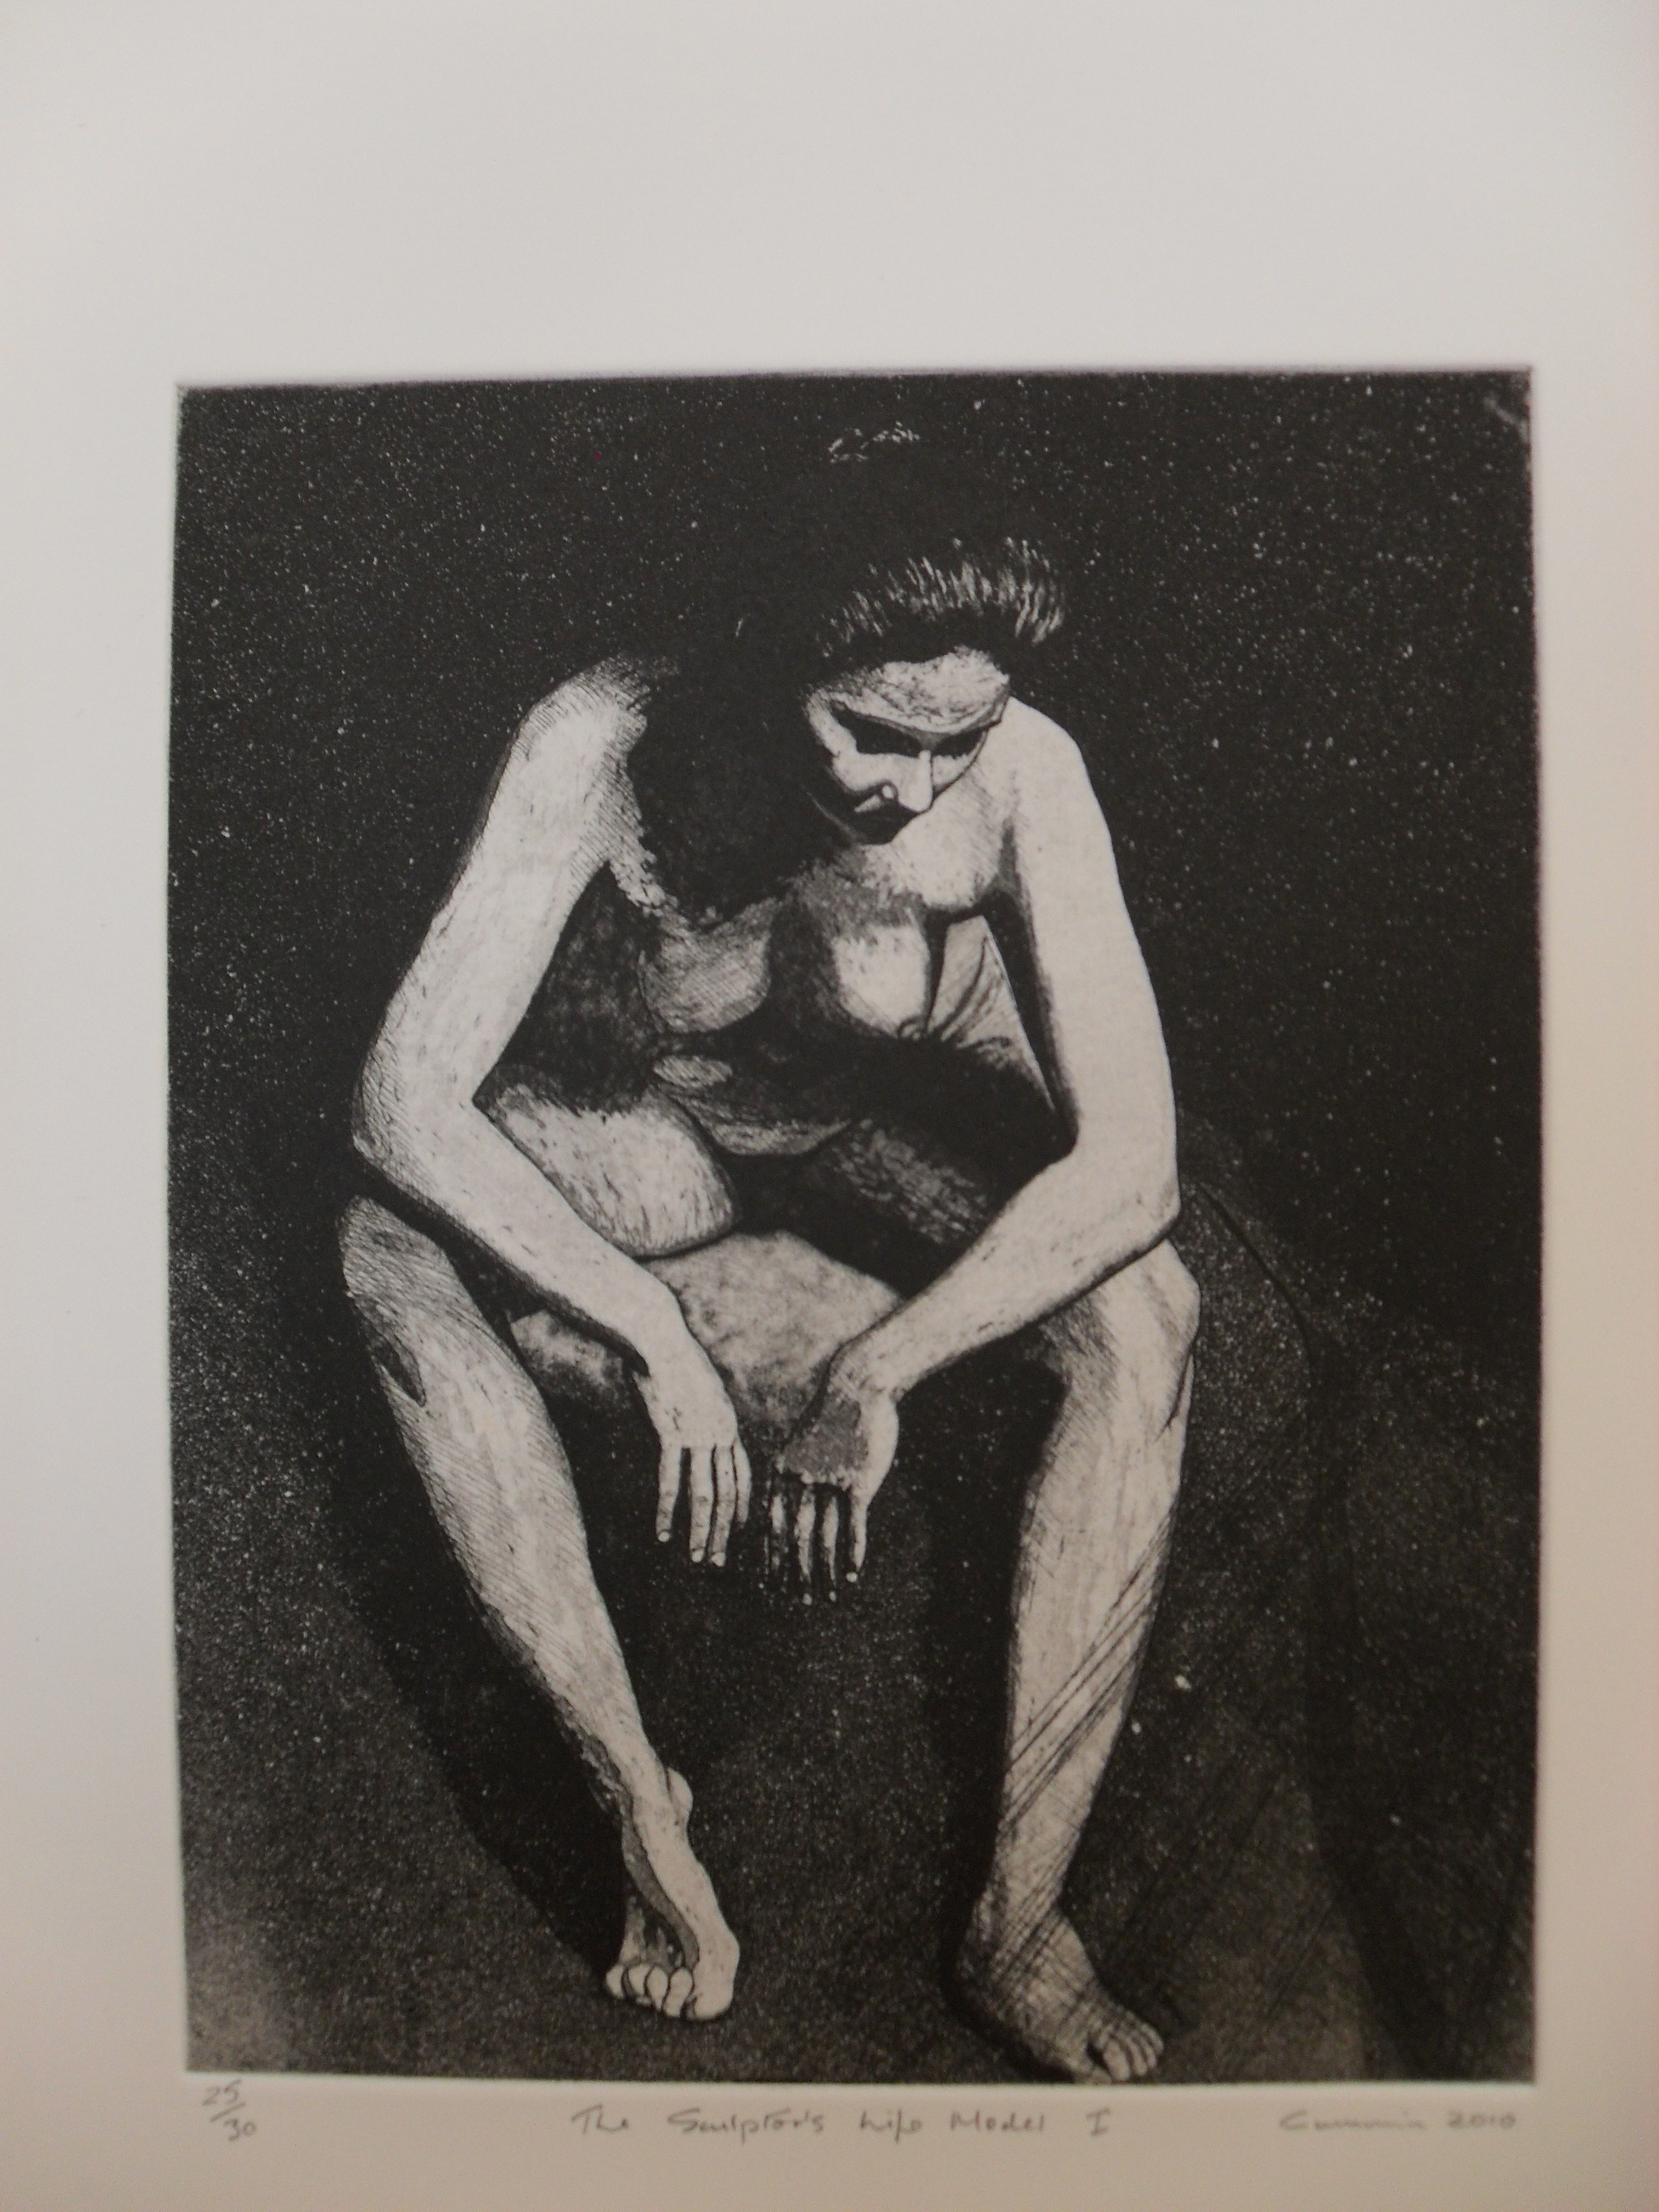 The Sculptor's Life Model I: Etching and Aquatint 2010 24.5x19.5cm Edition of Thirty